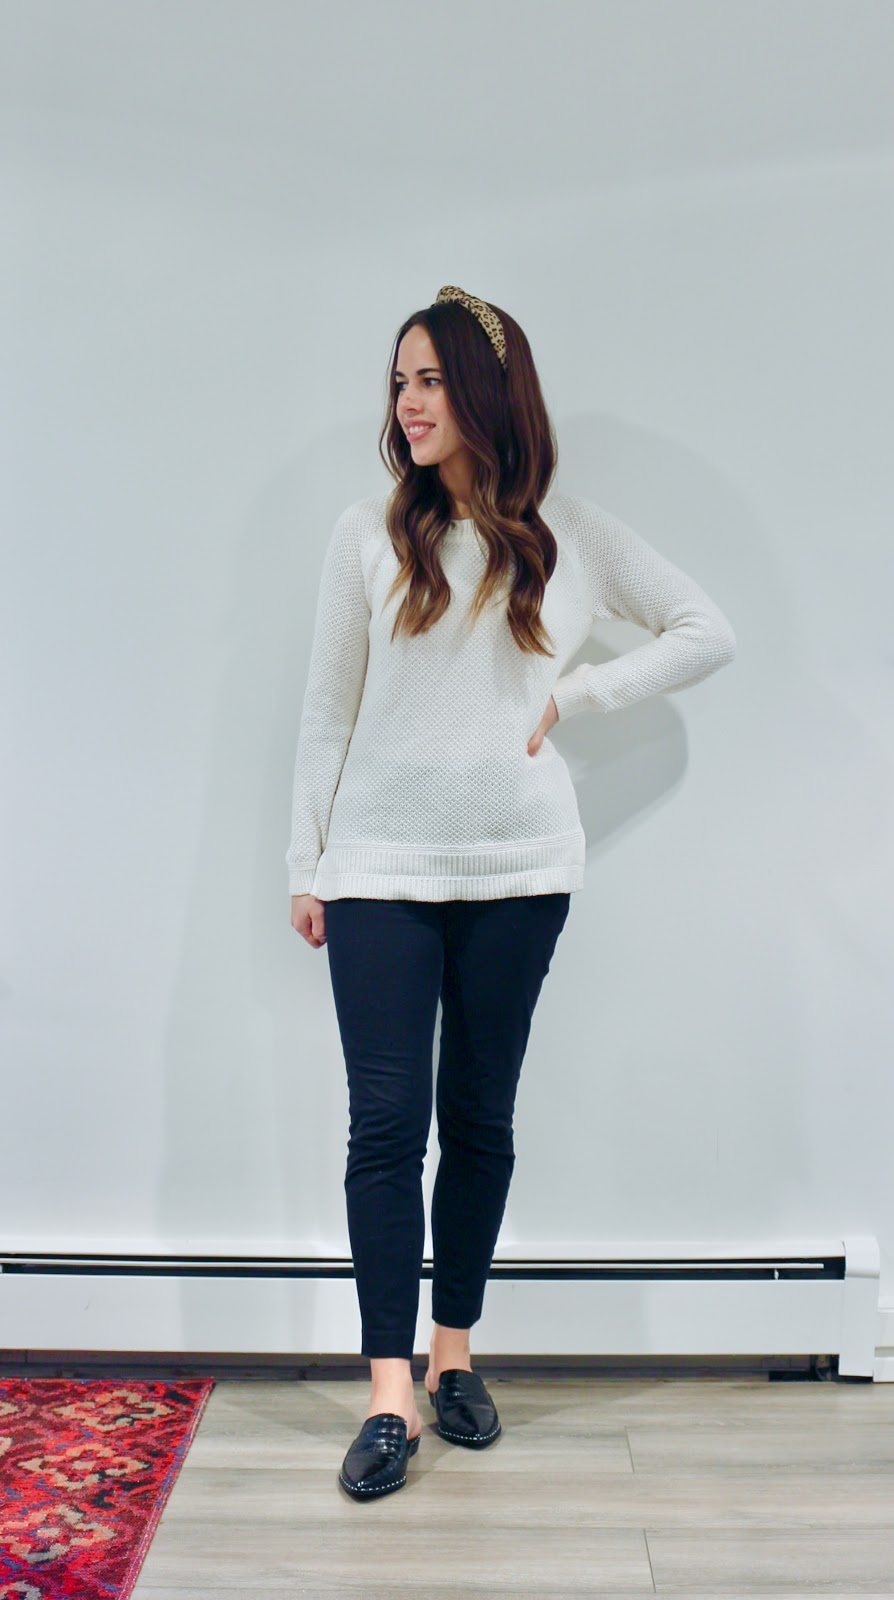 Jules in Flats - Textured Knit Sweater + Leopard Headband (Business Casual Winter Workwear on a Budget)